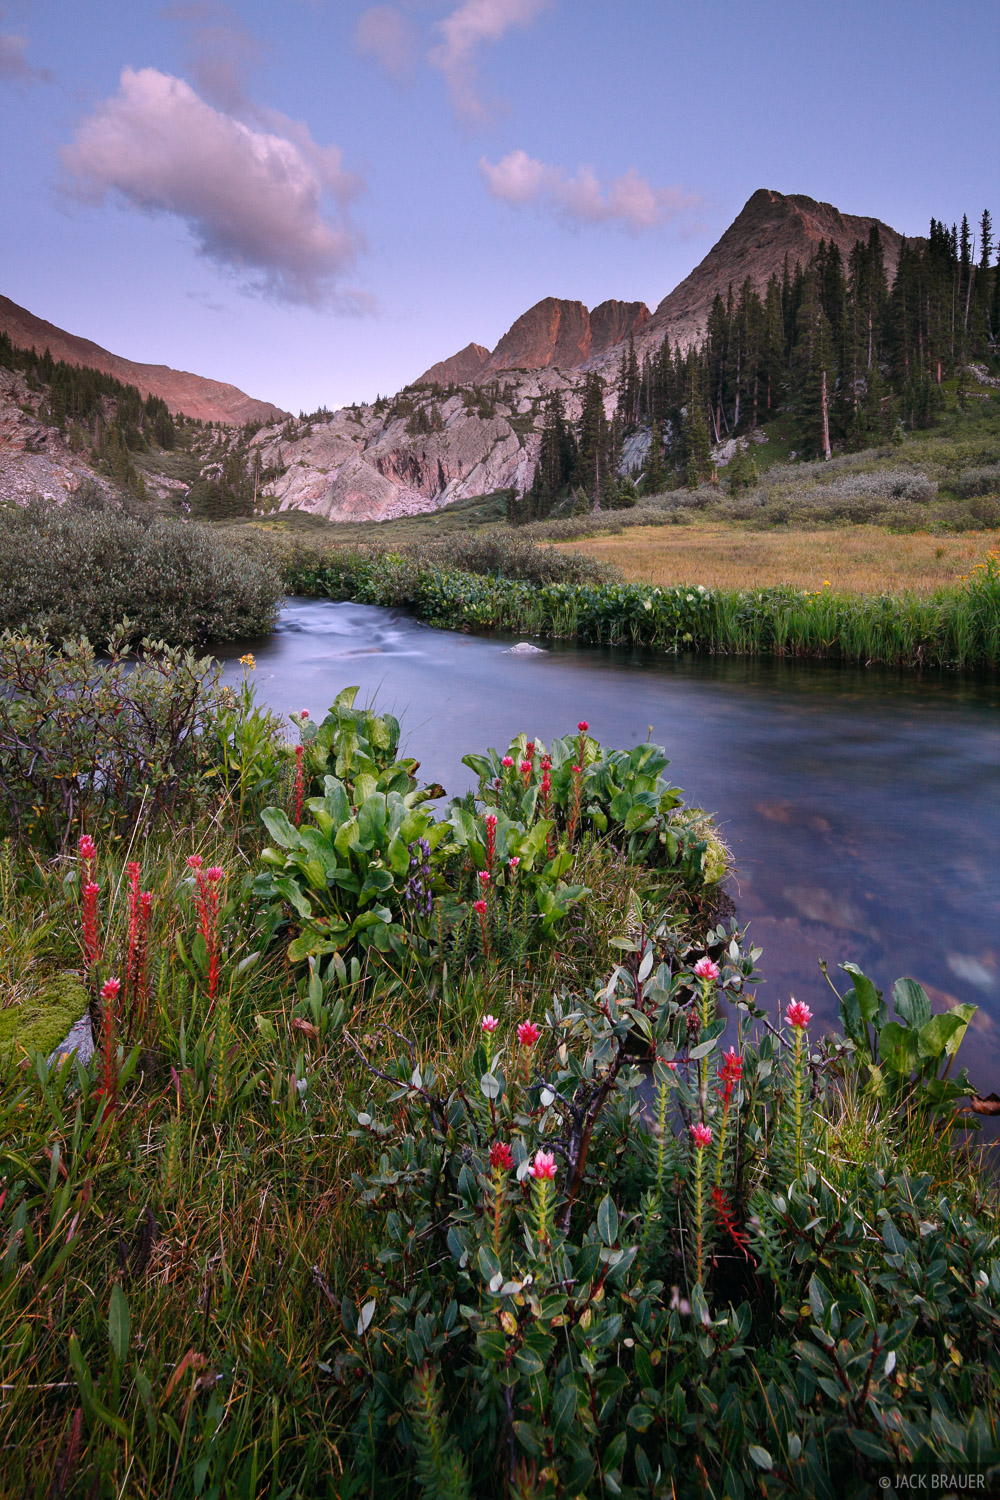 Wildflowers along Vestal Creek, under the soft light of dusk, with the Trinity Peaks as a backdrop.